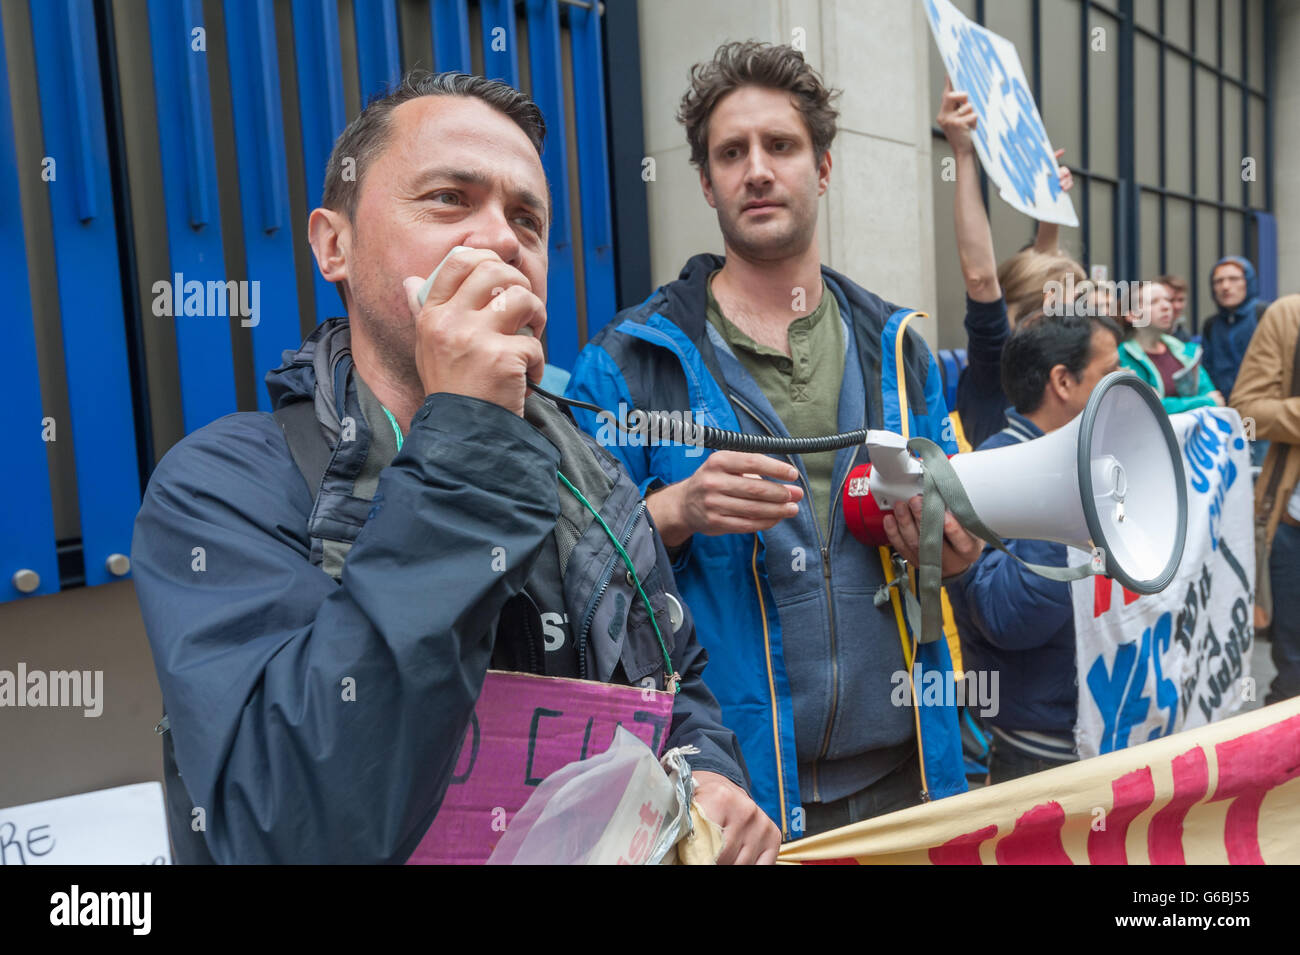 London, UK. June 29th, 2016. Rob Willimas, Chair of the National Shop Stewards Network speaks in support of the Stock Photo